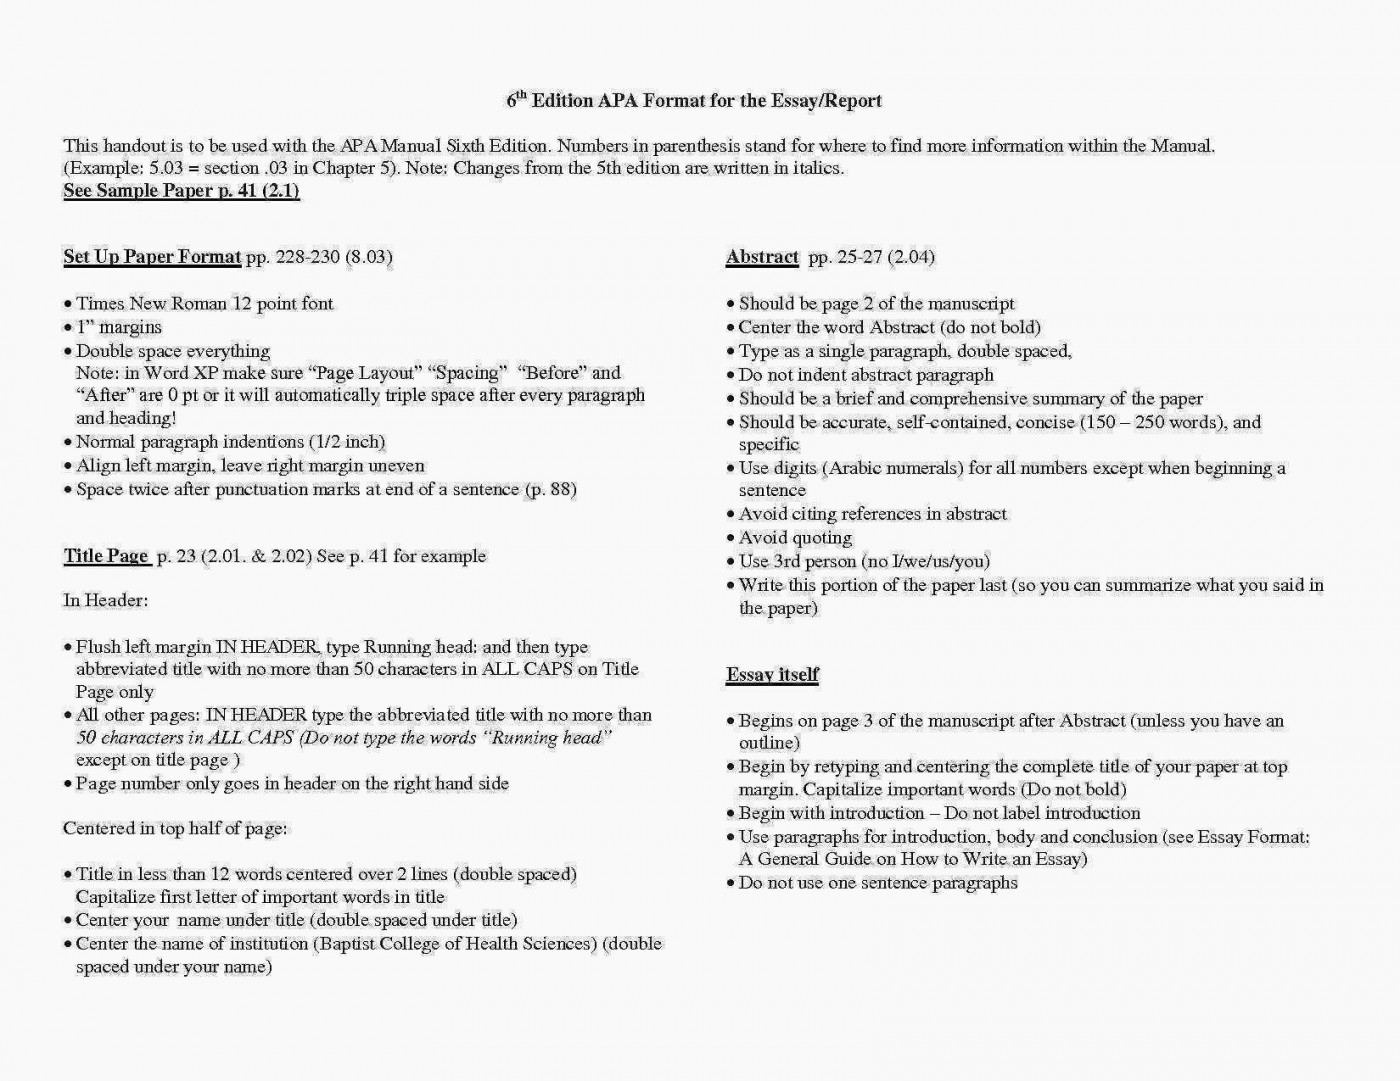 008 Magnificent Research Paper Proposal Template Apa Highest Quality 1400